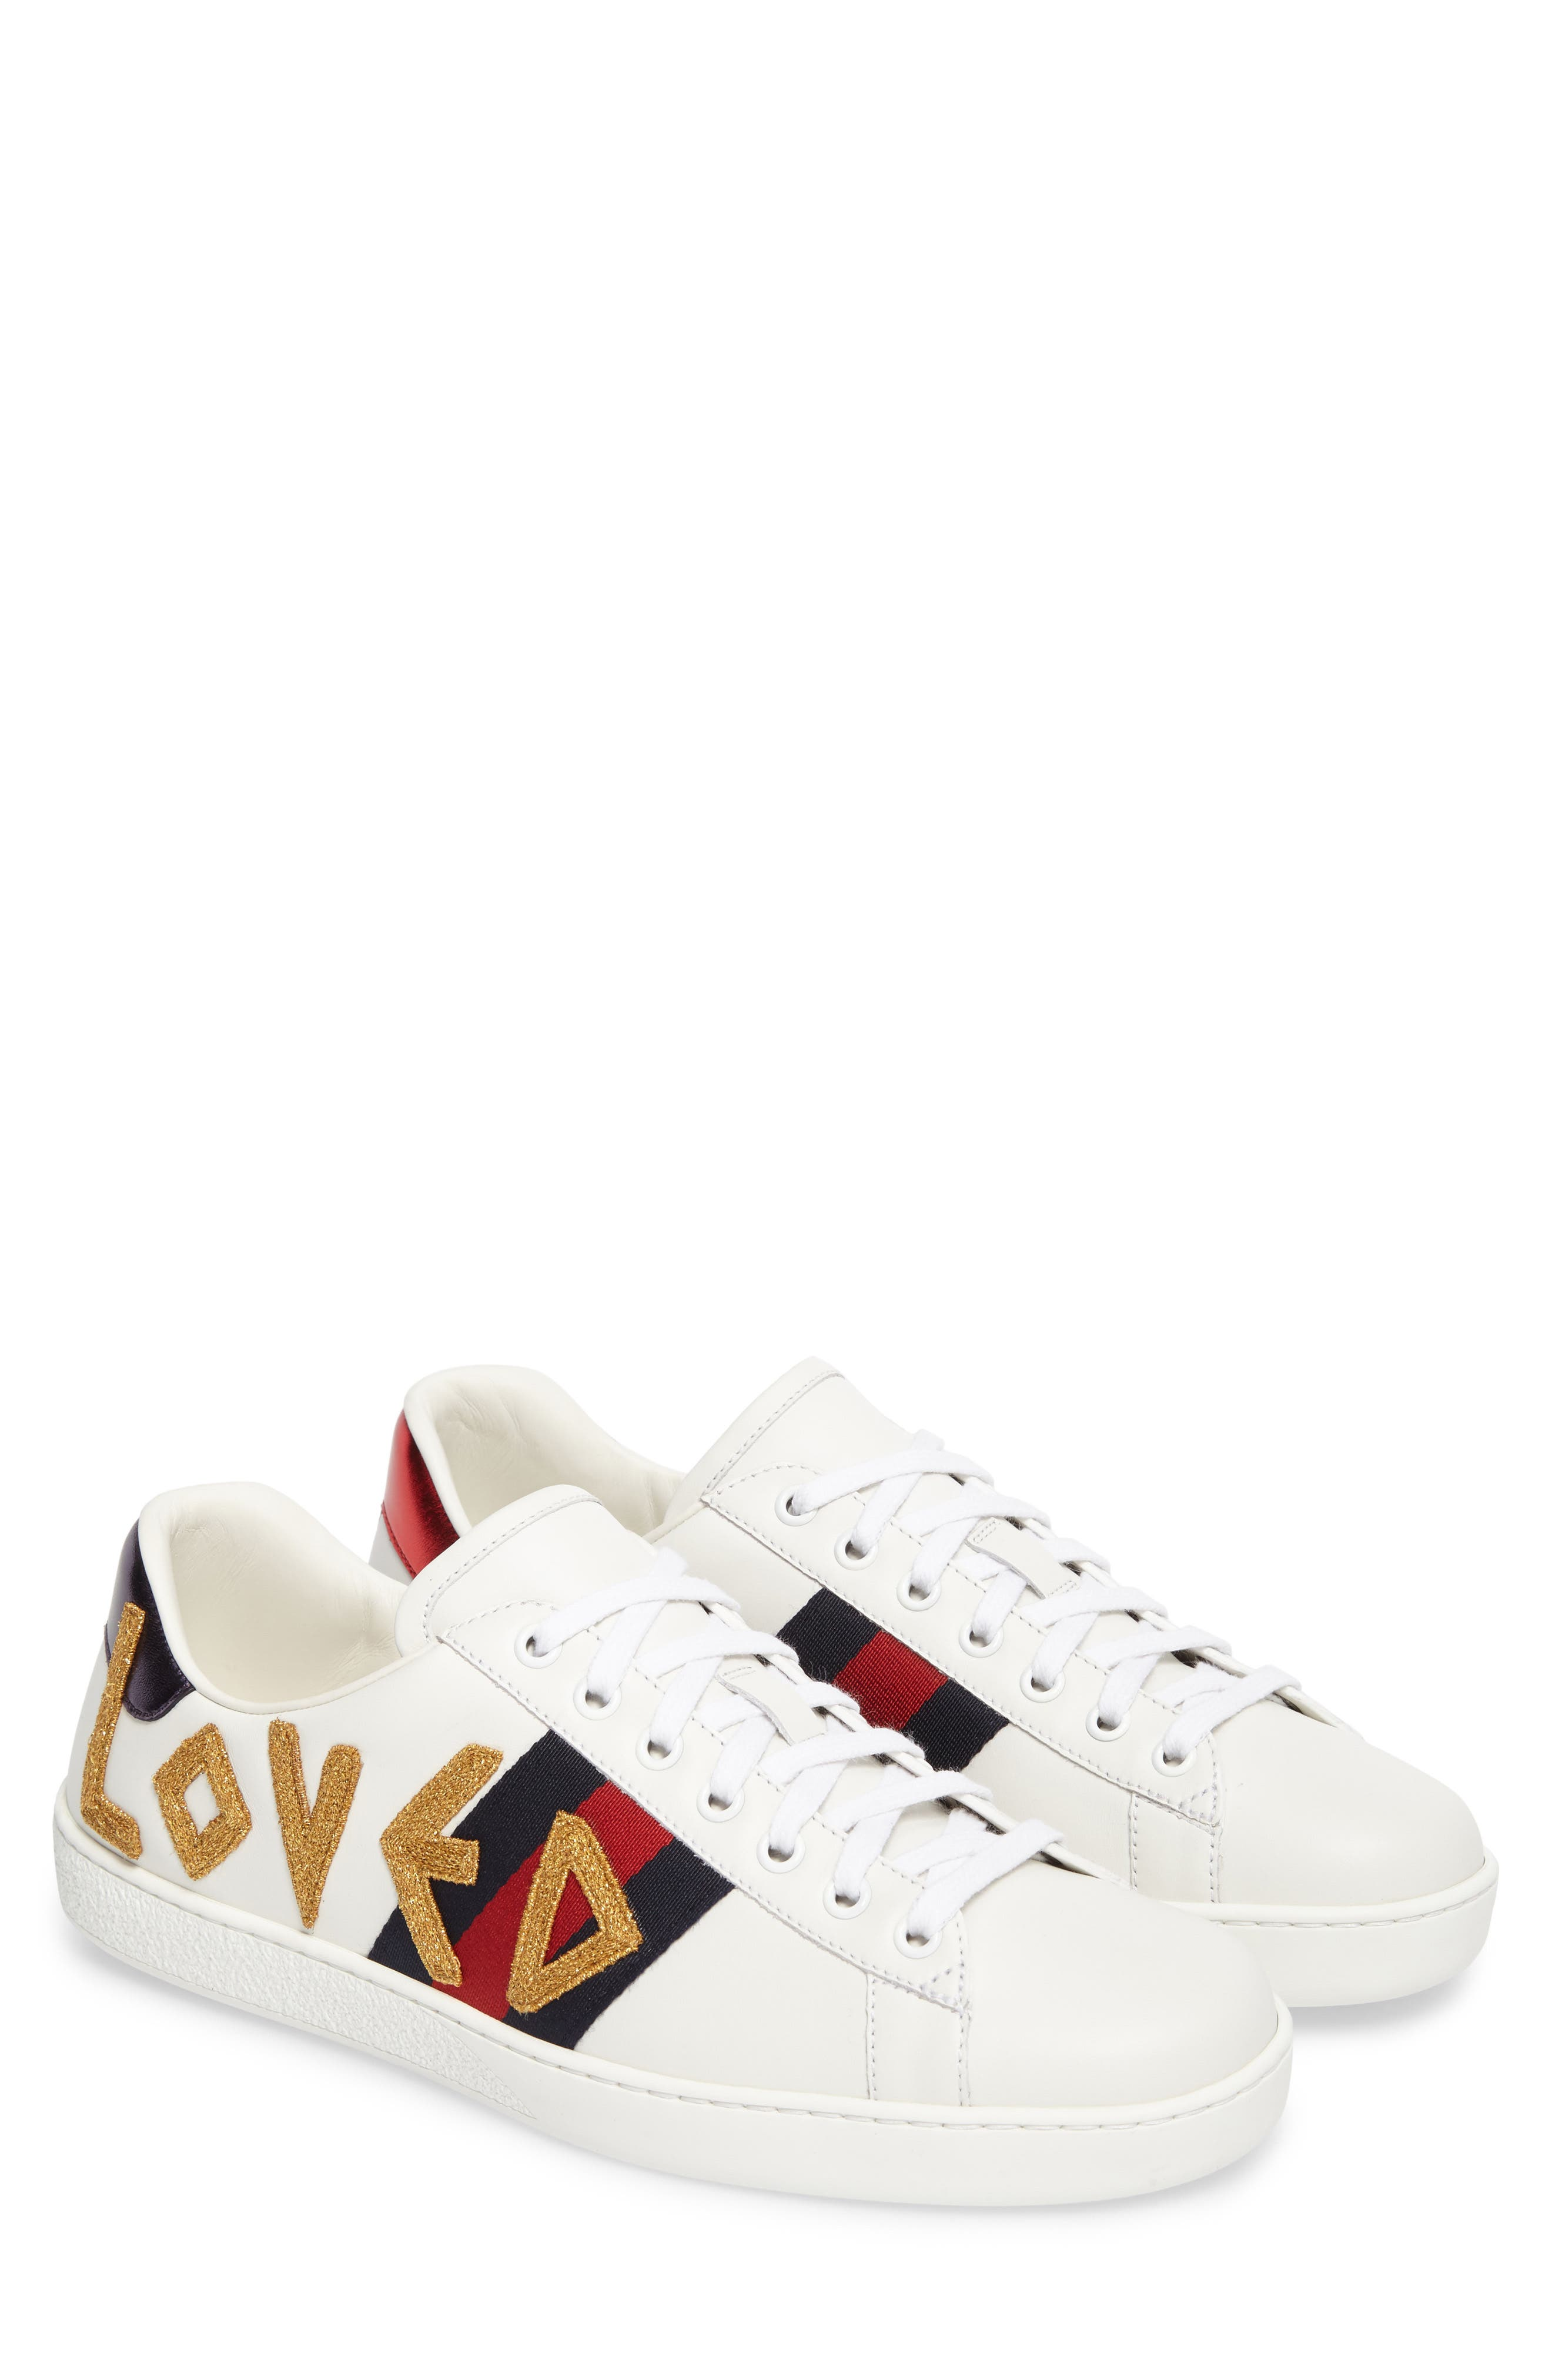 Alternate Image 1 Selected - Gucci New Ace Loved Sneaker (Men)